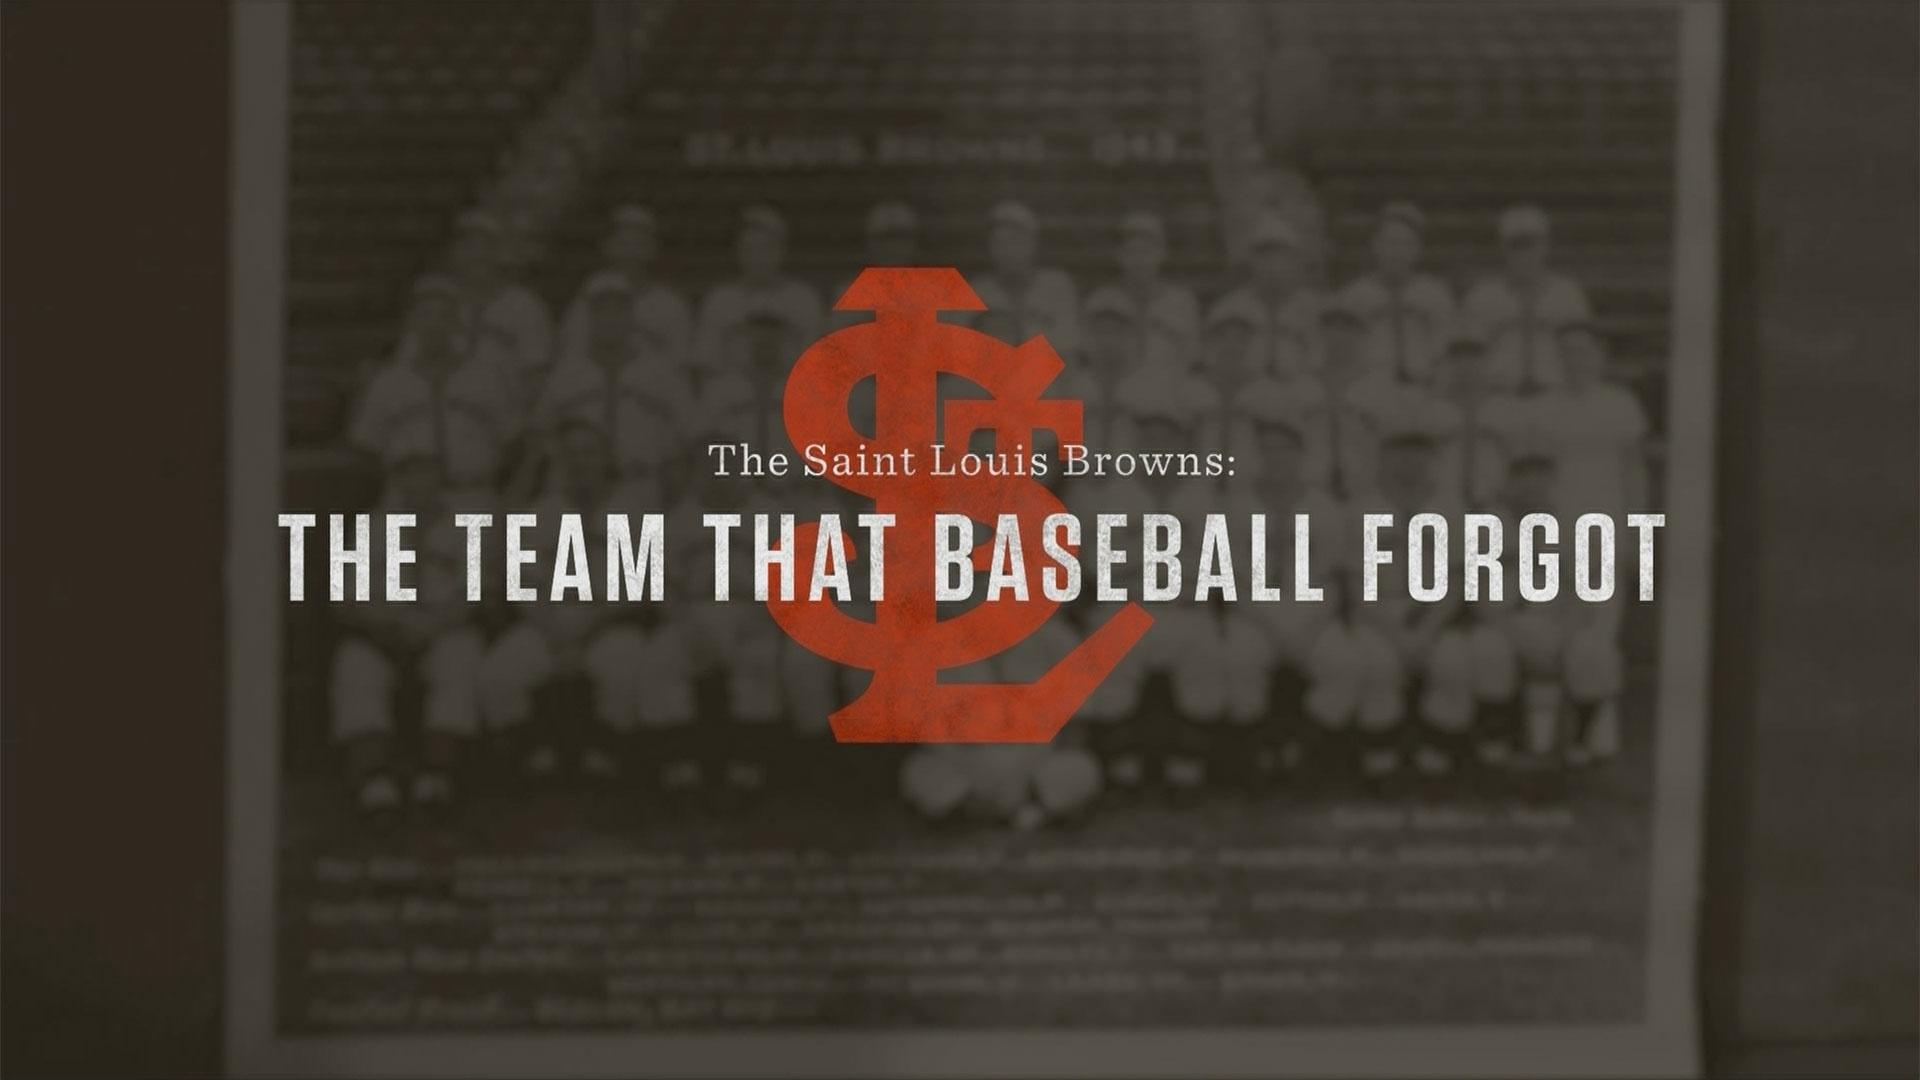 The St. Louis Browns: The Team that Baseball Forgo